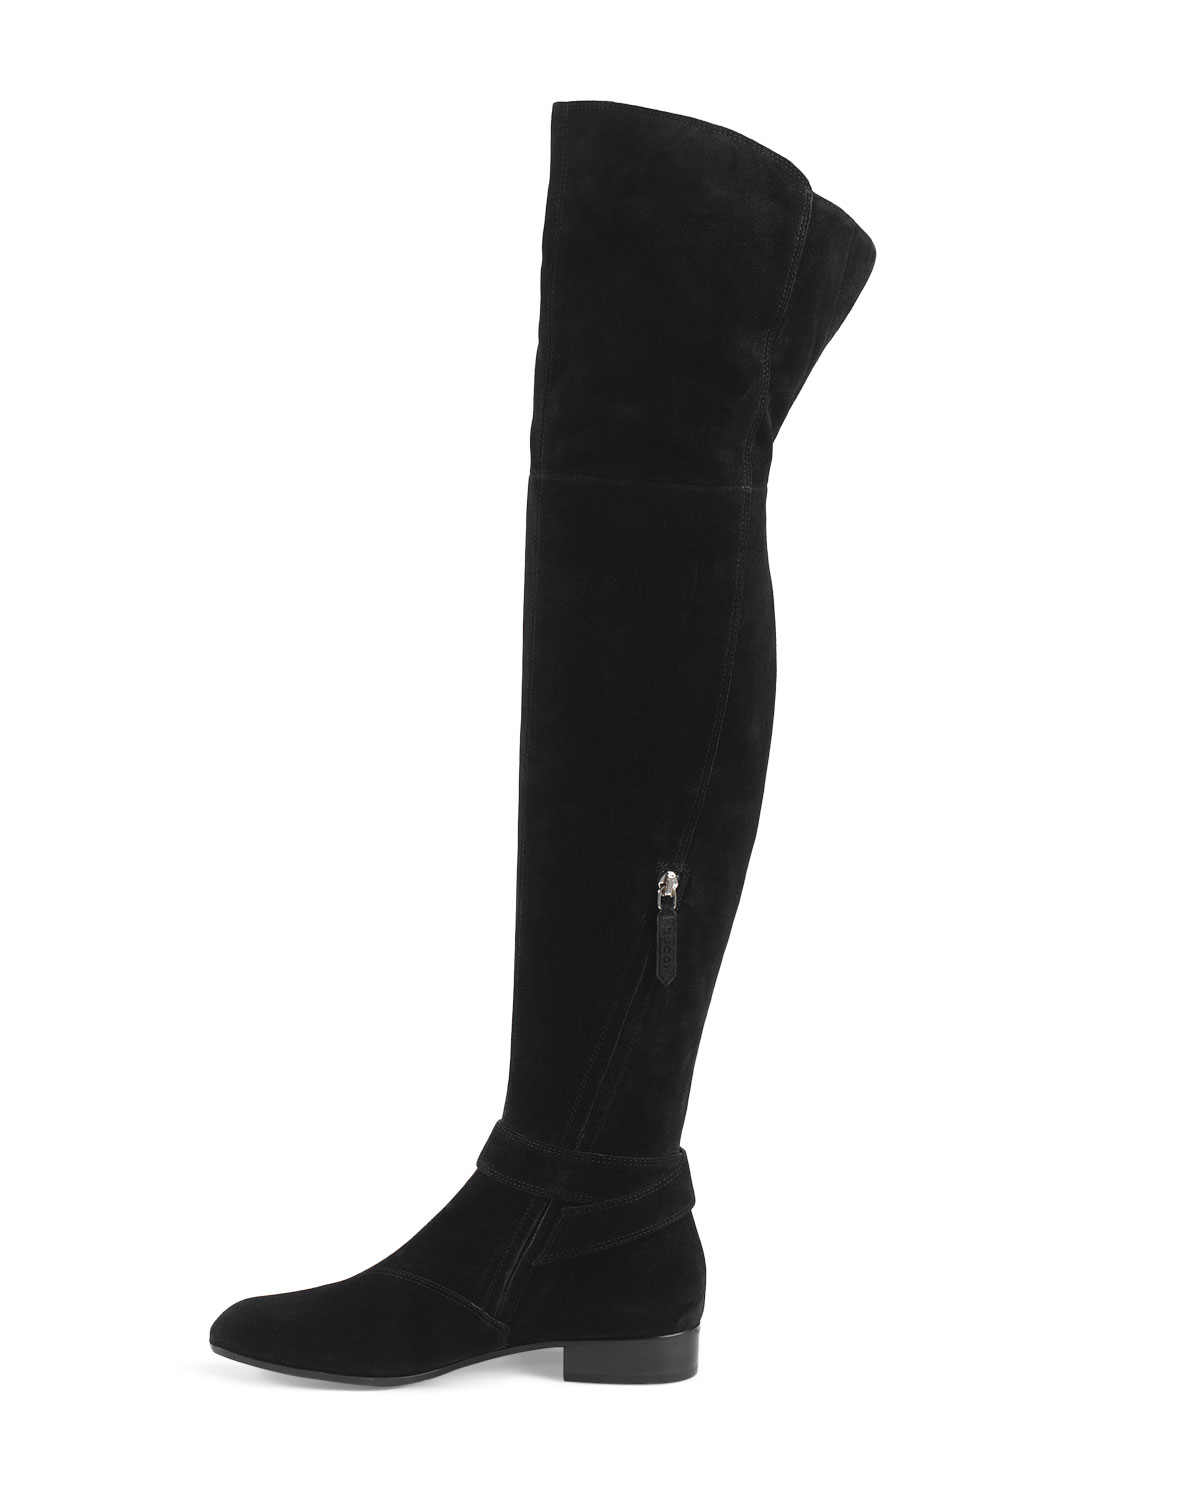 3a41ffa81 Gucci Dionysus Suede Over-The-Knee Boot, Nero | Neiman Marcus